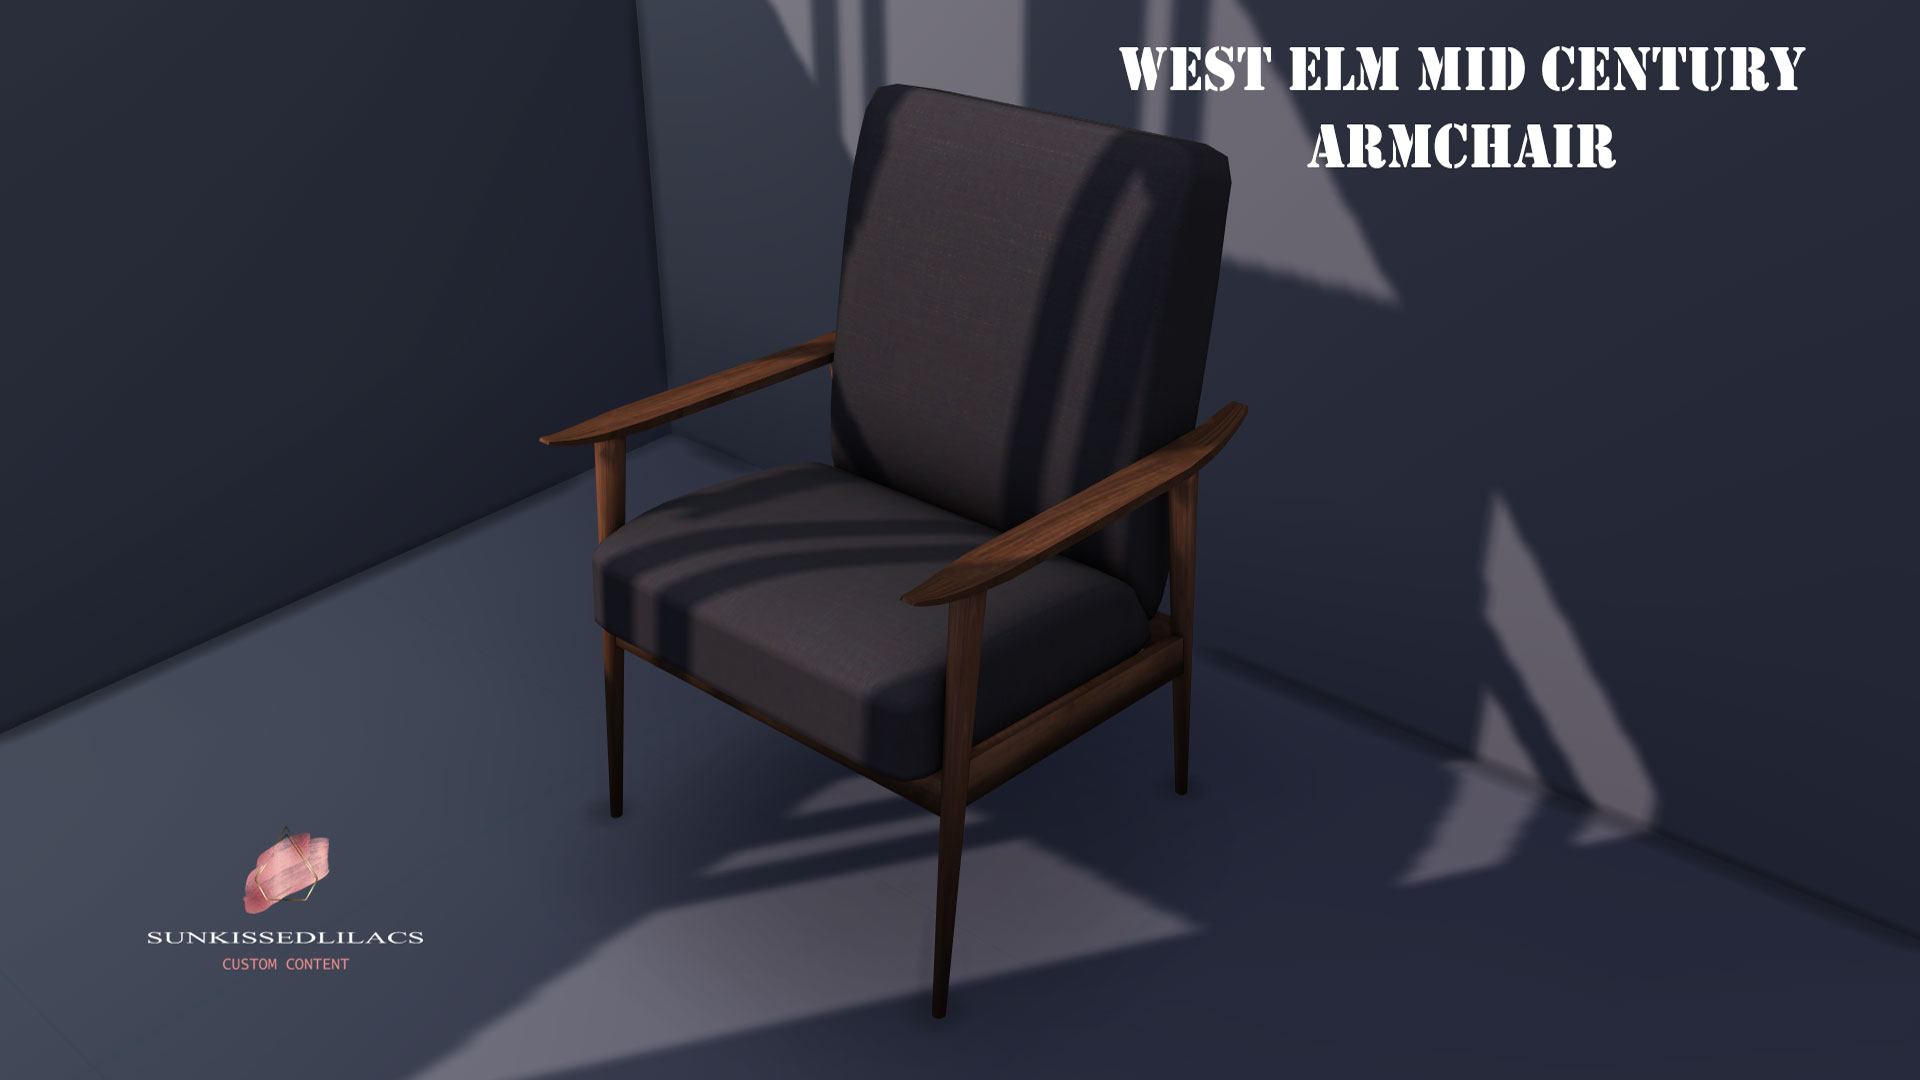 West Elm Mid Century Arm Chair sunkissedlilacs-simms-4-custom-content